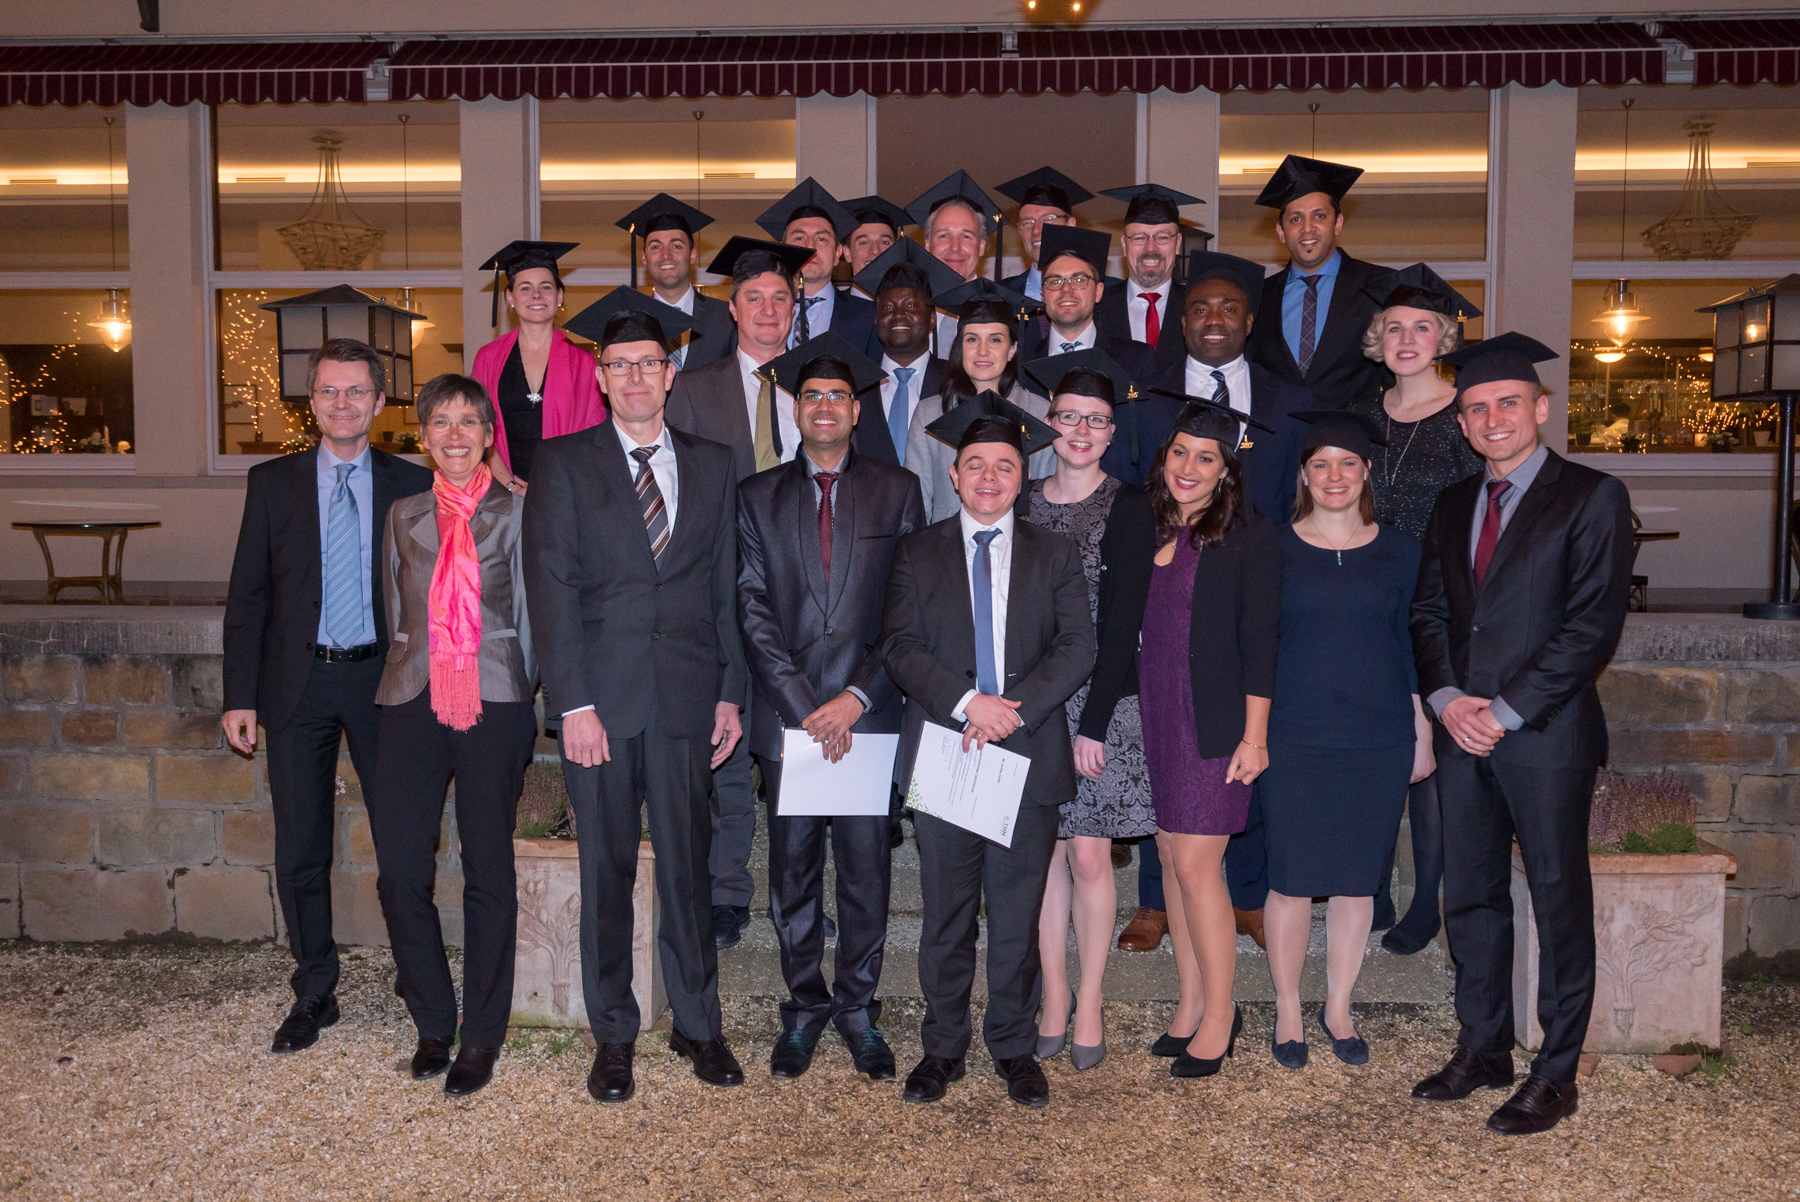 Graduation class 2018 in Bad Nauheim